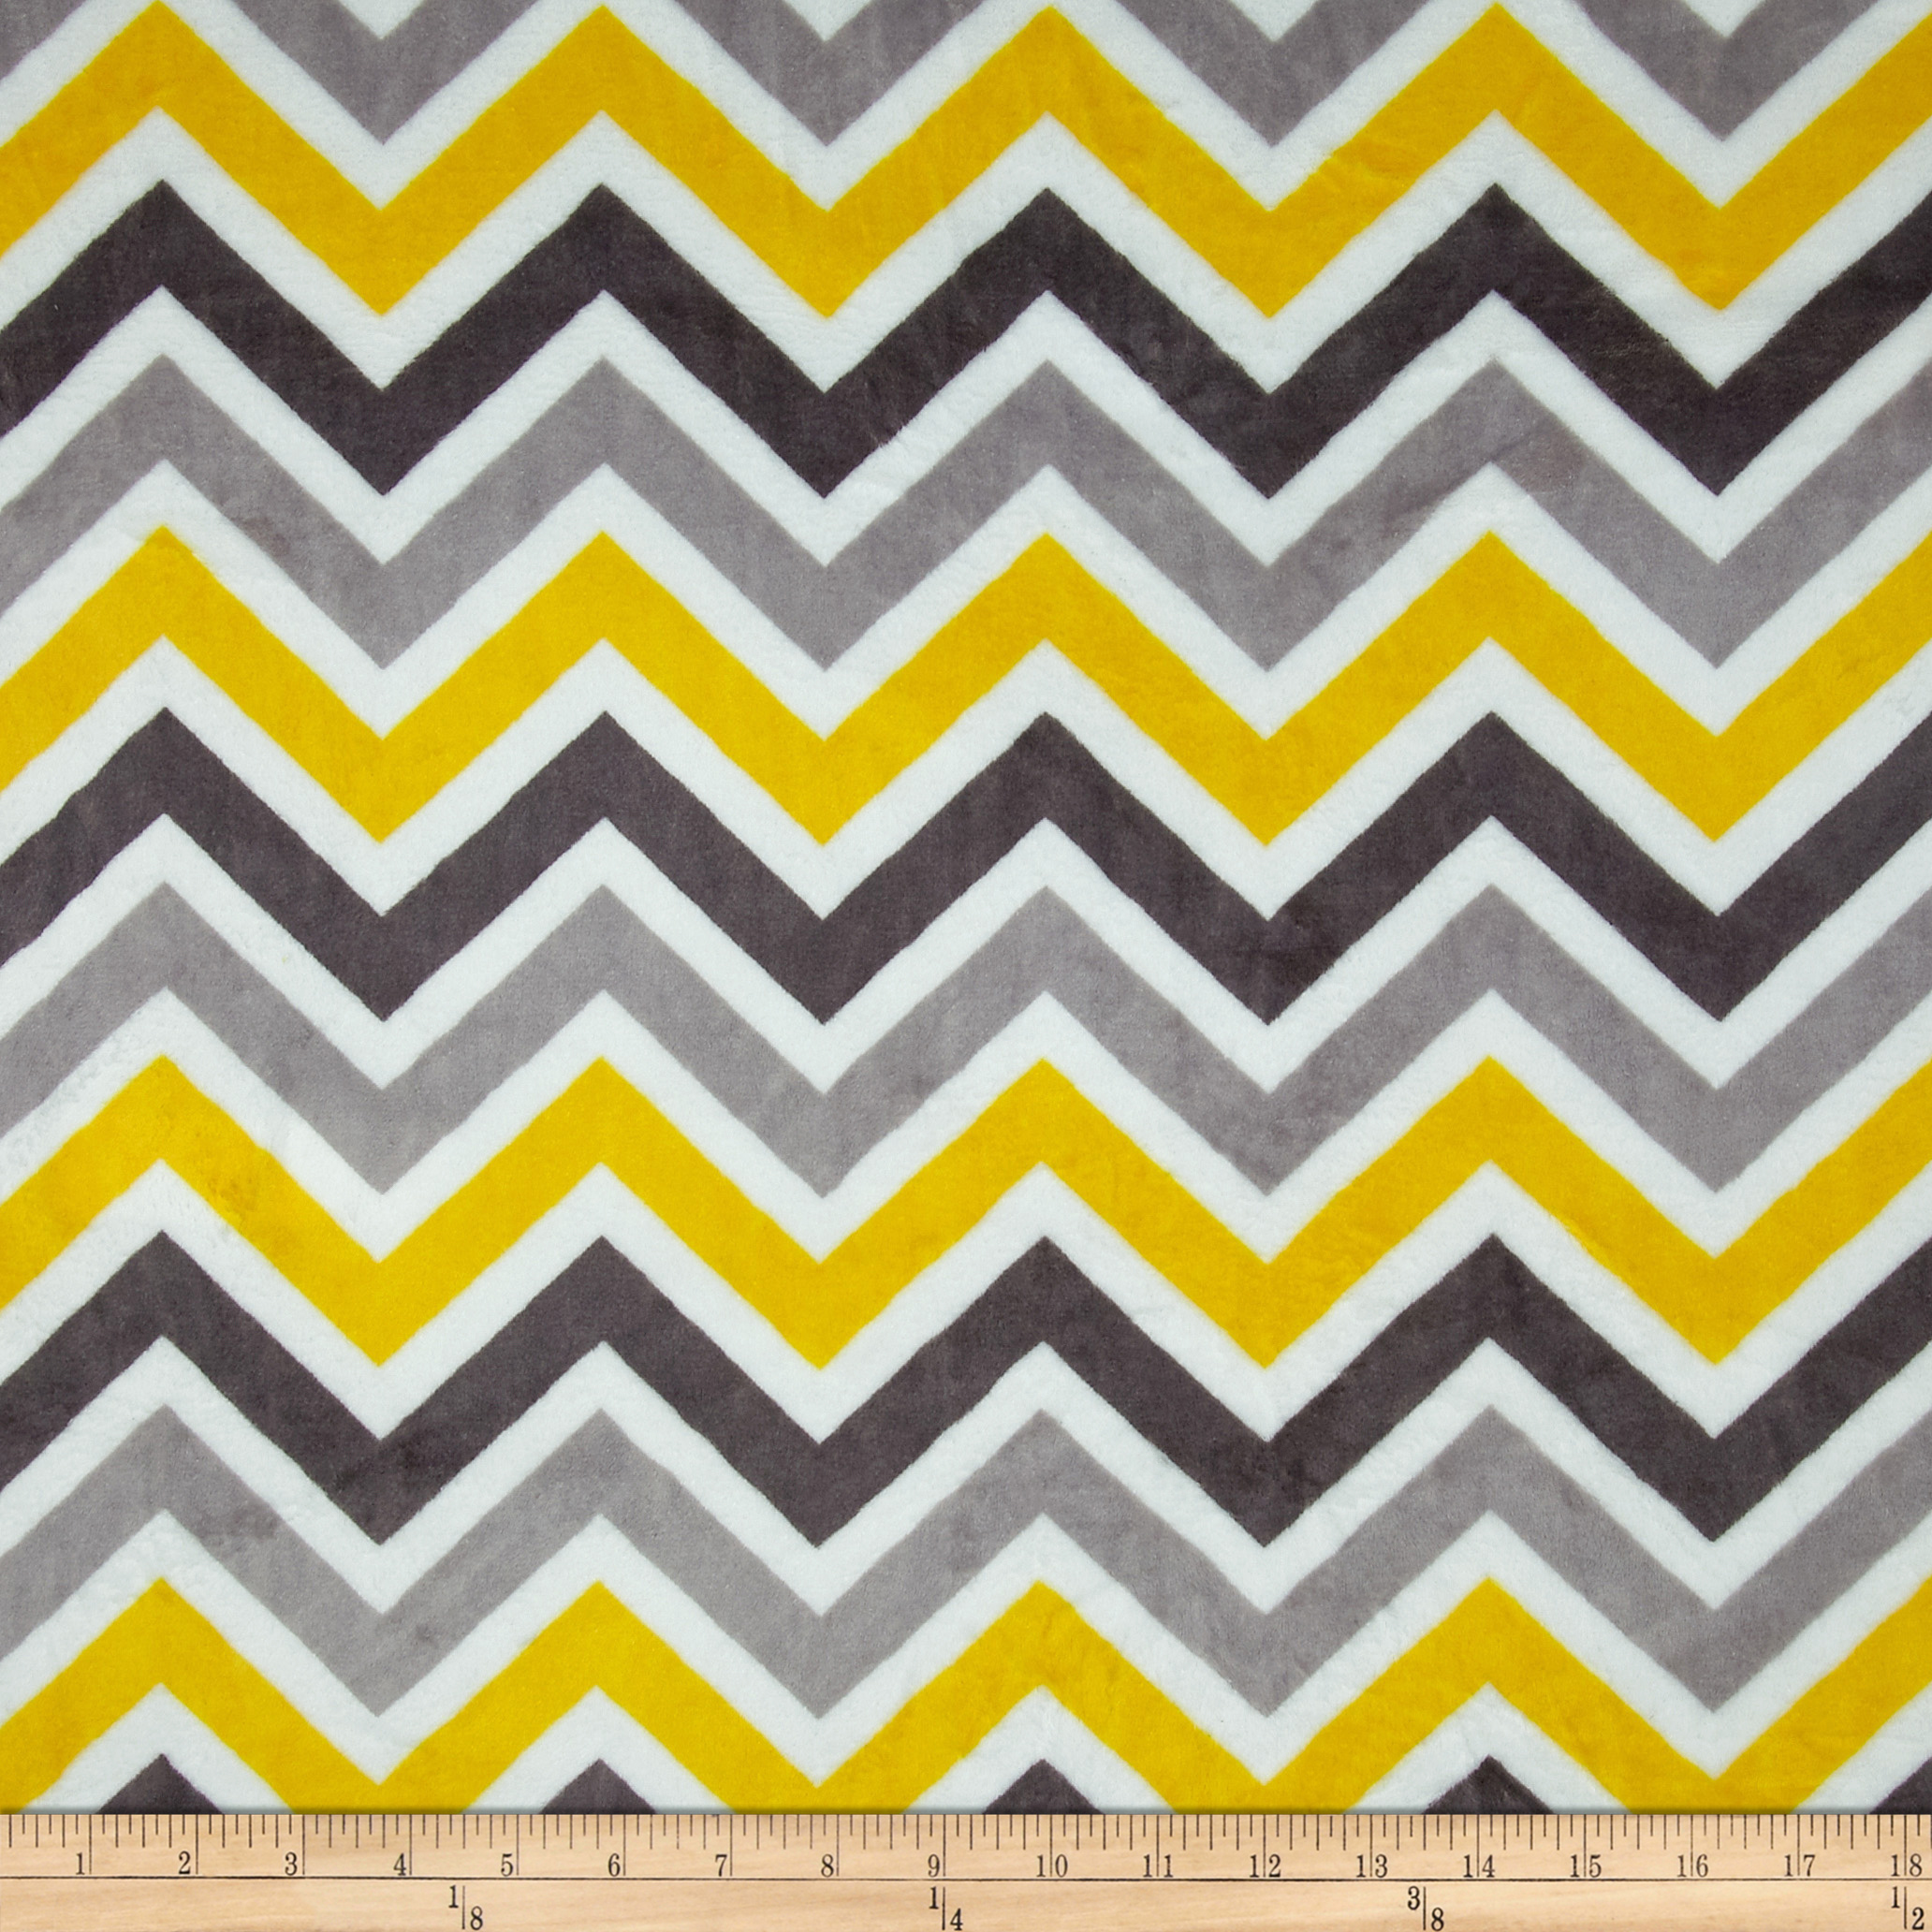 Minky Cuddle Zig Zag Lemon/Silver Fabric